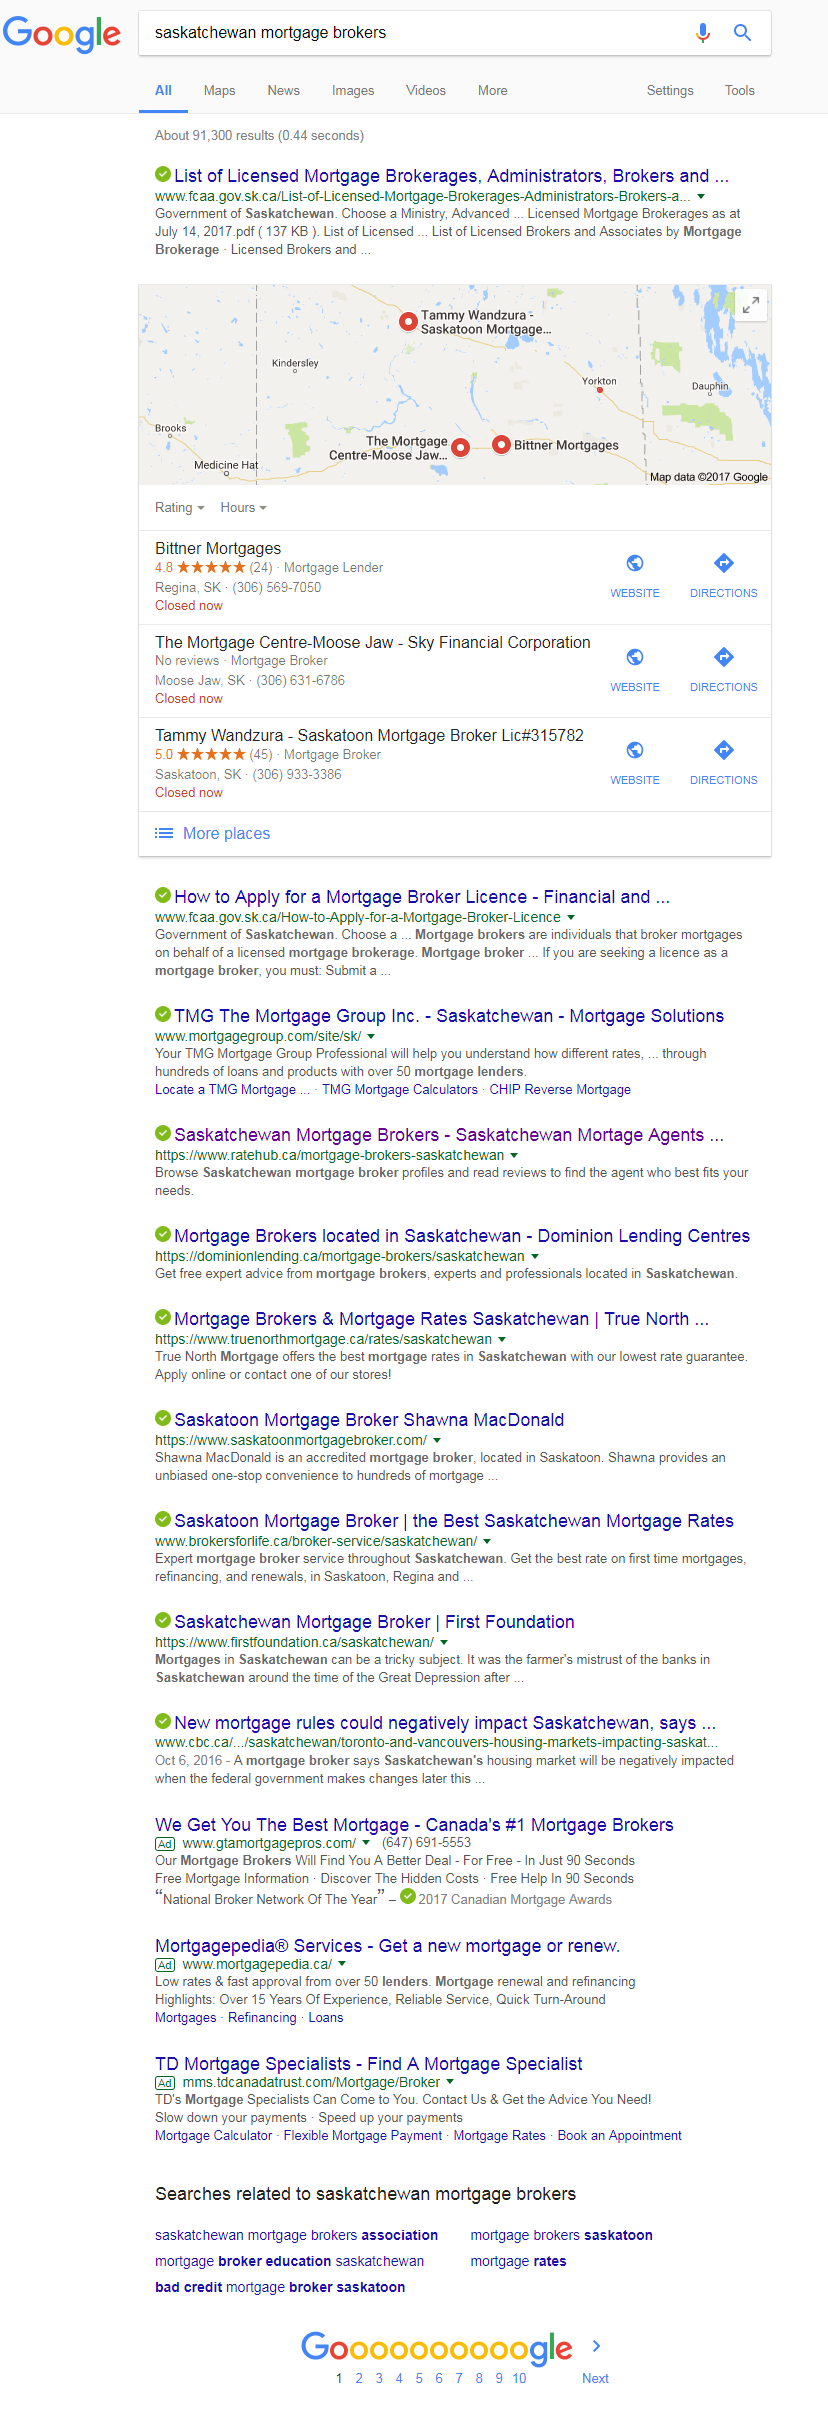 Saskatchewan Mortgage Brokers - Results from Google